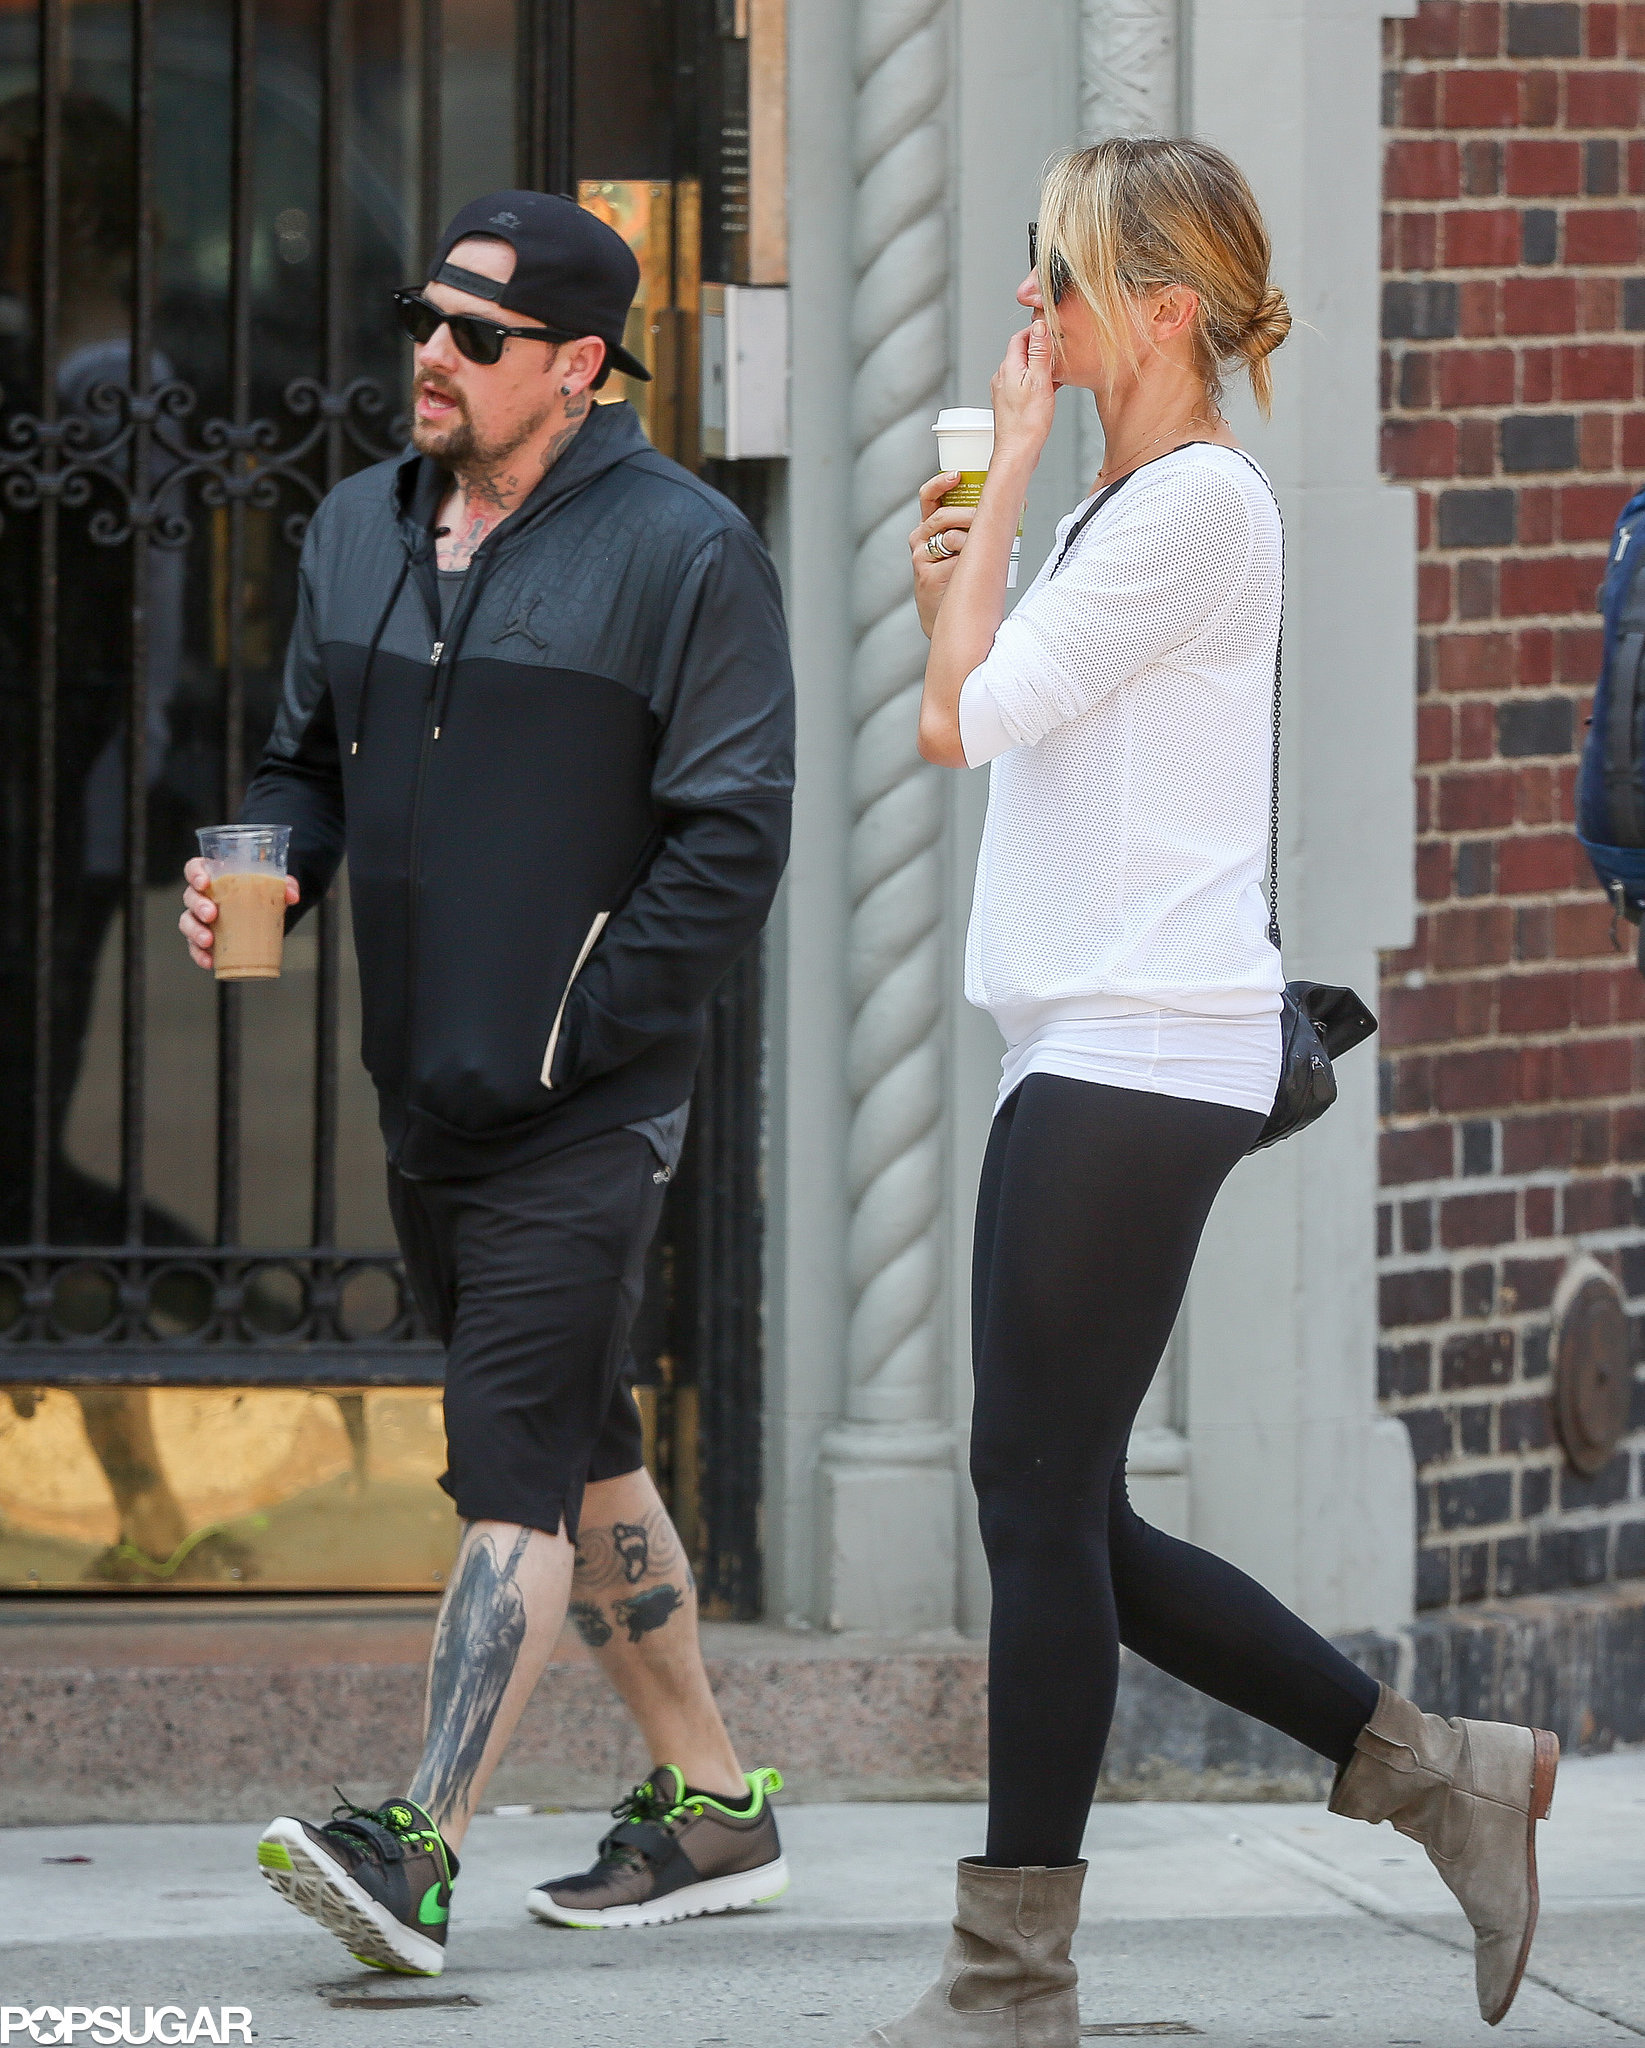 Cameron Diaz and Benji Madden Go Public With PDA!